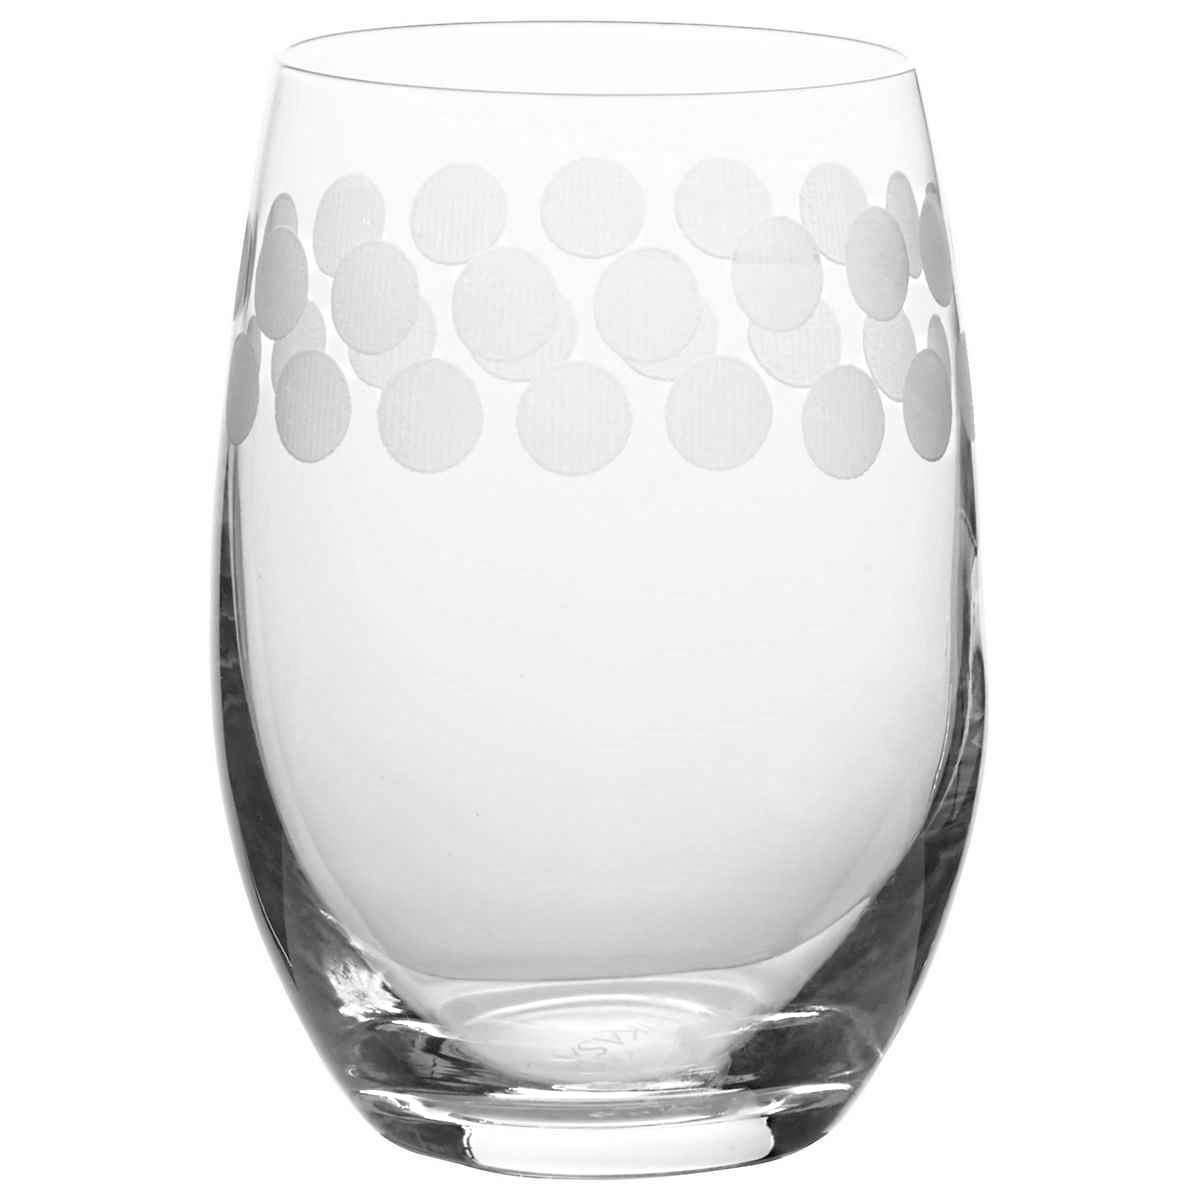 Mikasa Cheers Stemless Etched Wine Glasses, Fine European Lead-Free Crystal, 17-Ounces for Red or White Wine - Set of 6 by Mikasa (Image #5)